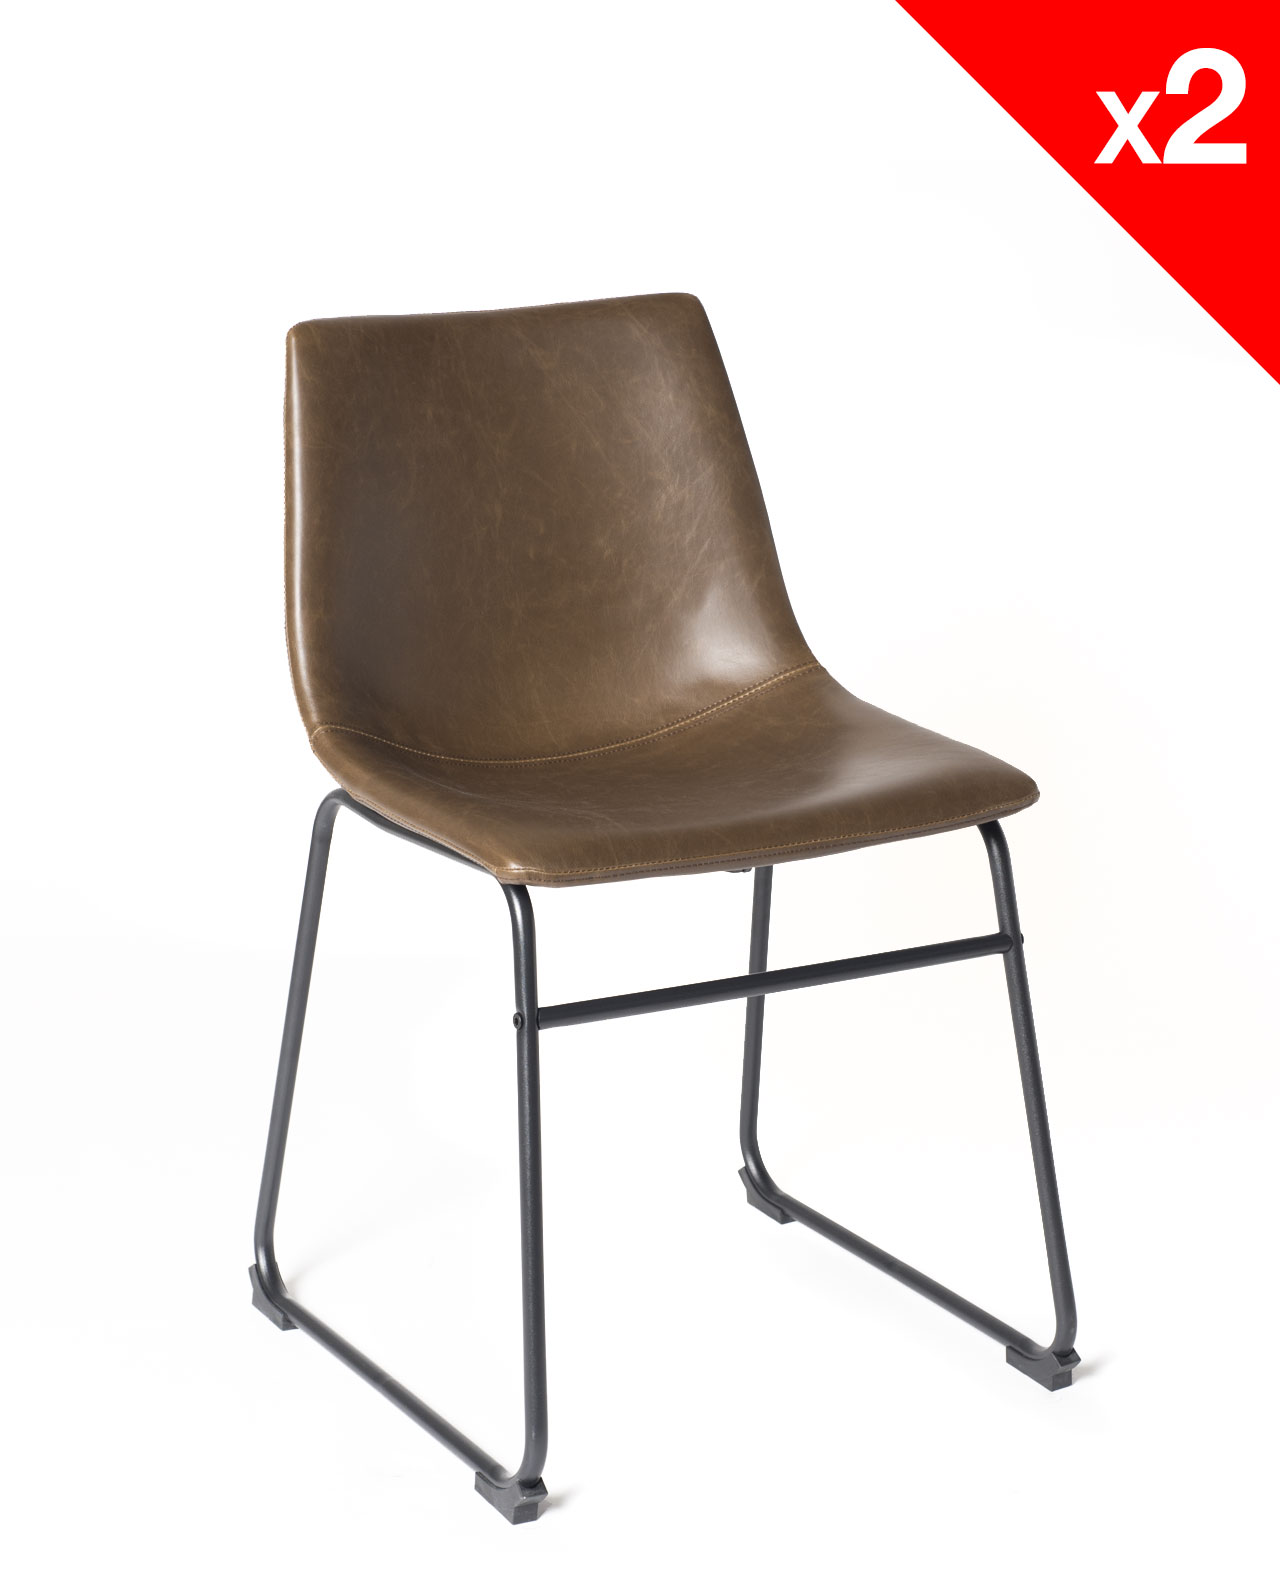 Chaise industrielle metal fashion designs - Chaises industrielles ...